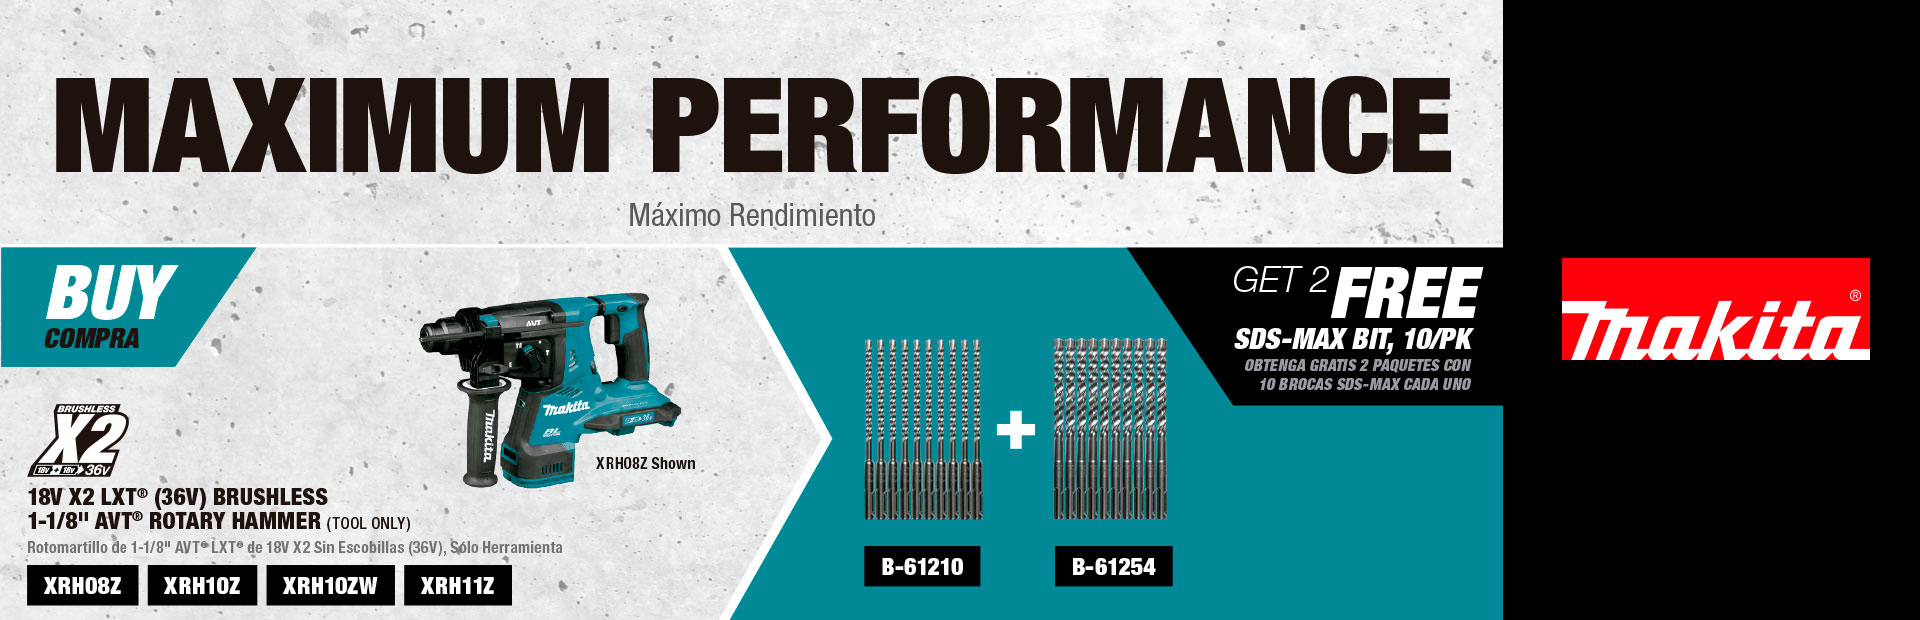 Makita: MAXIMUM PERFORMANCE